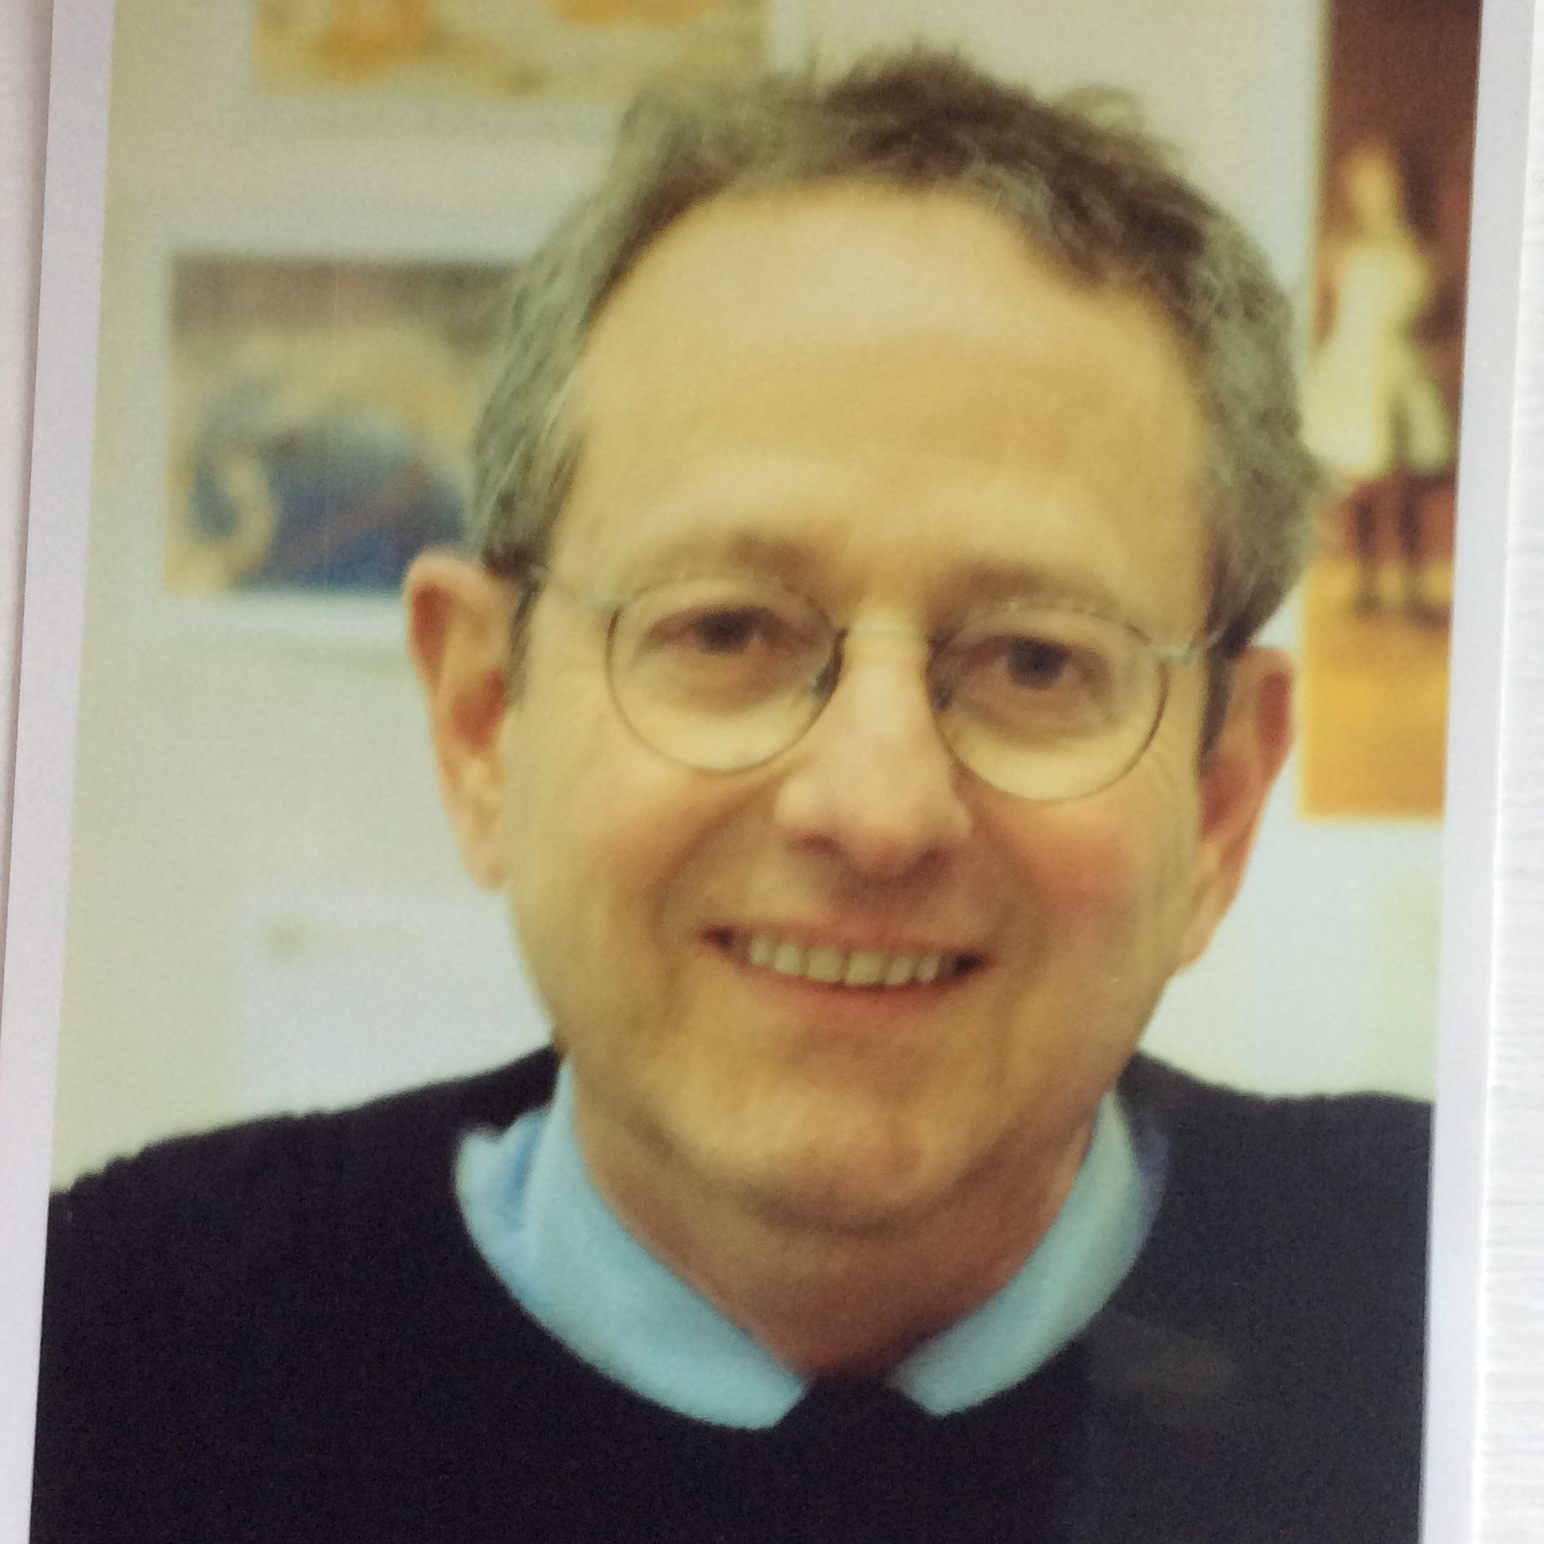 Donald P. Silver, C.P.A.   Production Accountant   Received BA from Muhlenberg College and MBA from Columbia University.